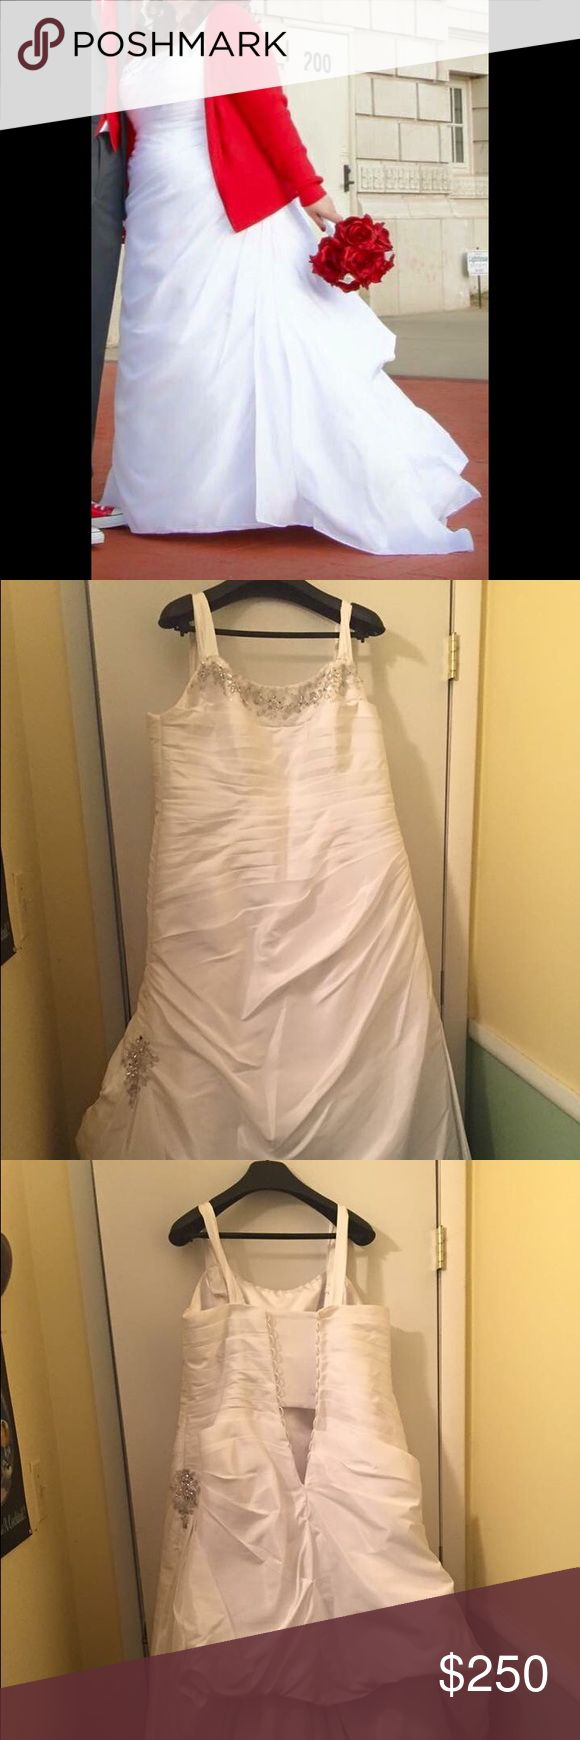 Alfred Angelo Wedding Dress Alfred Angelo wedding dress. Originally size 22 but altered to 18/20. It hasn't been cleaned but no stains (just wrinkled...it's been in a cloth bag since worn in Dec 2015). Alfred Angelo Dresses Wedding